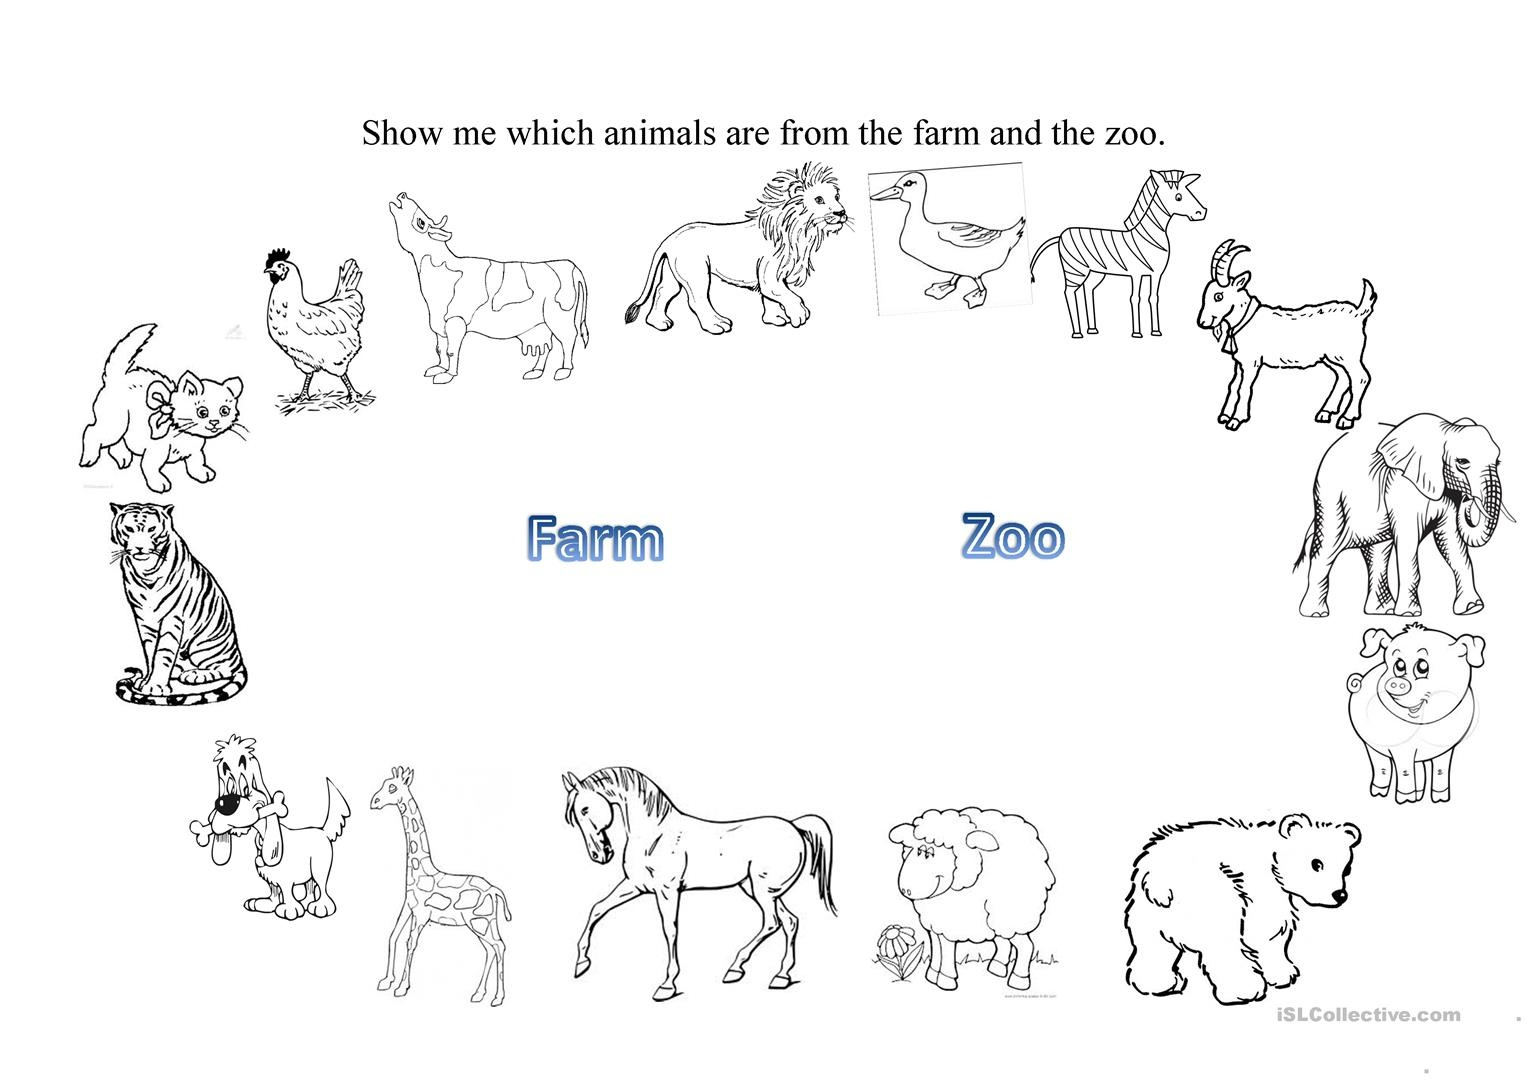 Farm And Zoo Animals Worksheet - Free Esl Printable Worksheets Made - Free Printable Zoo Worksheets